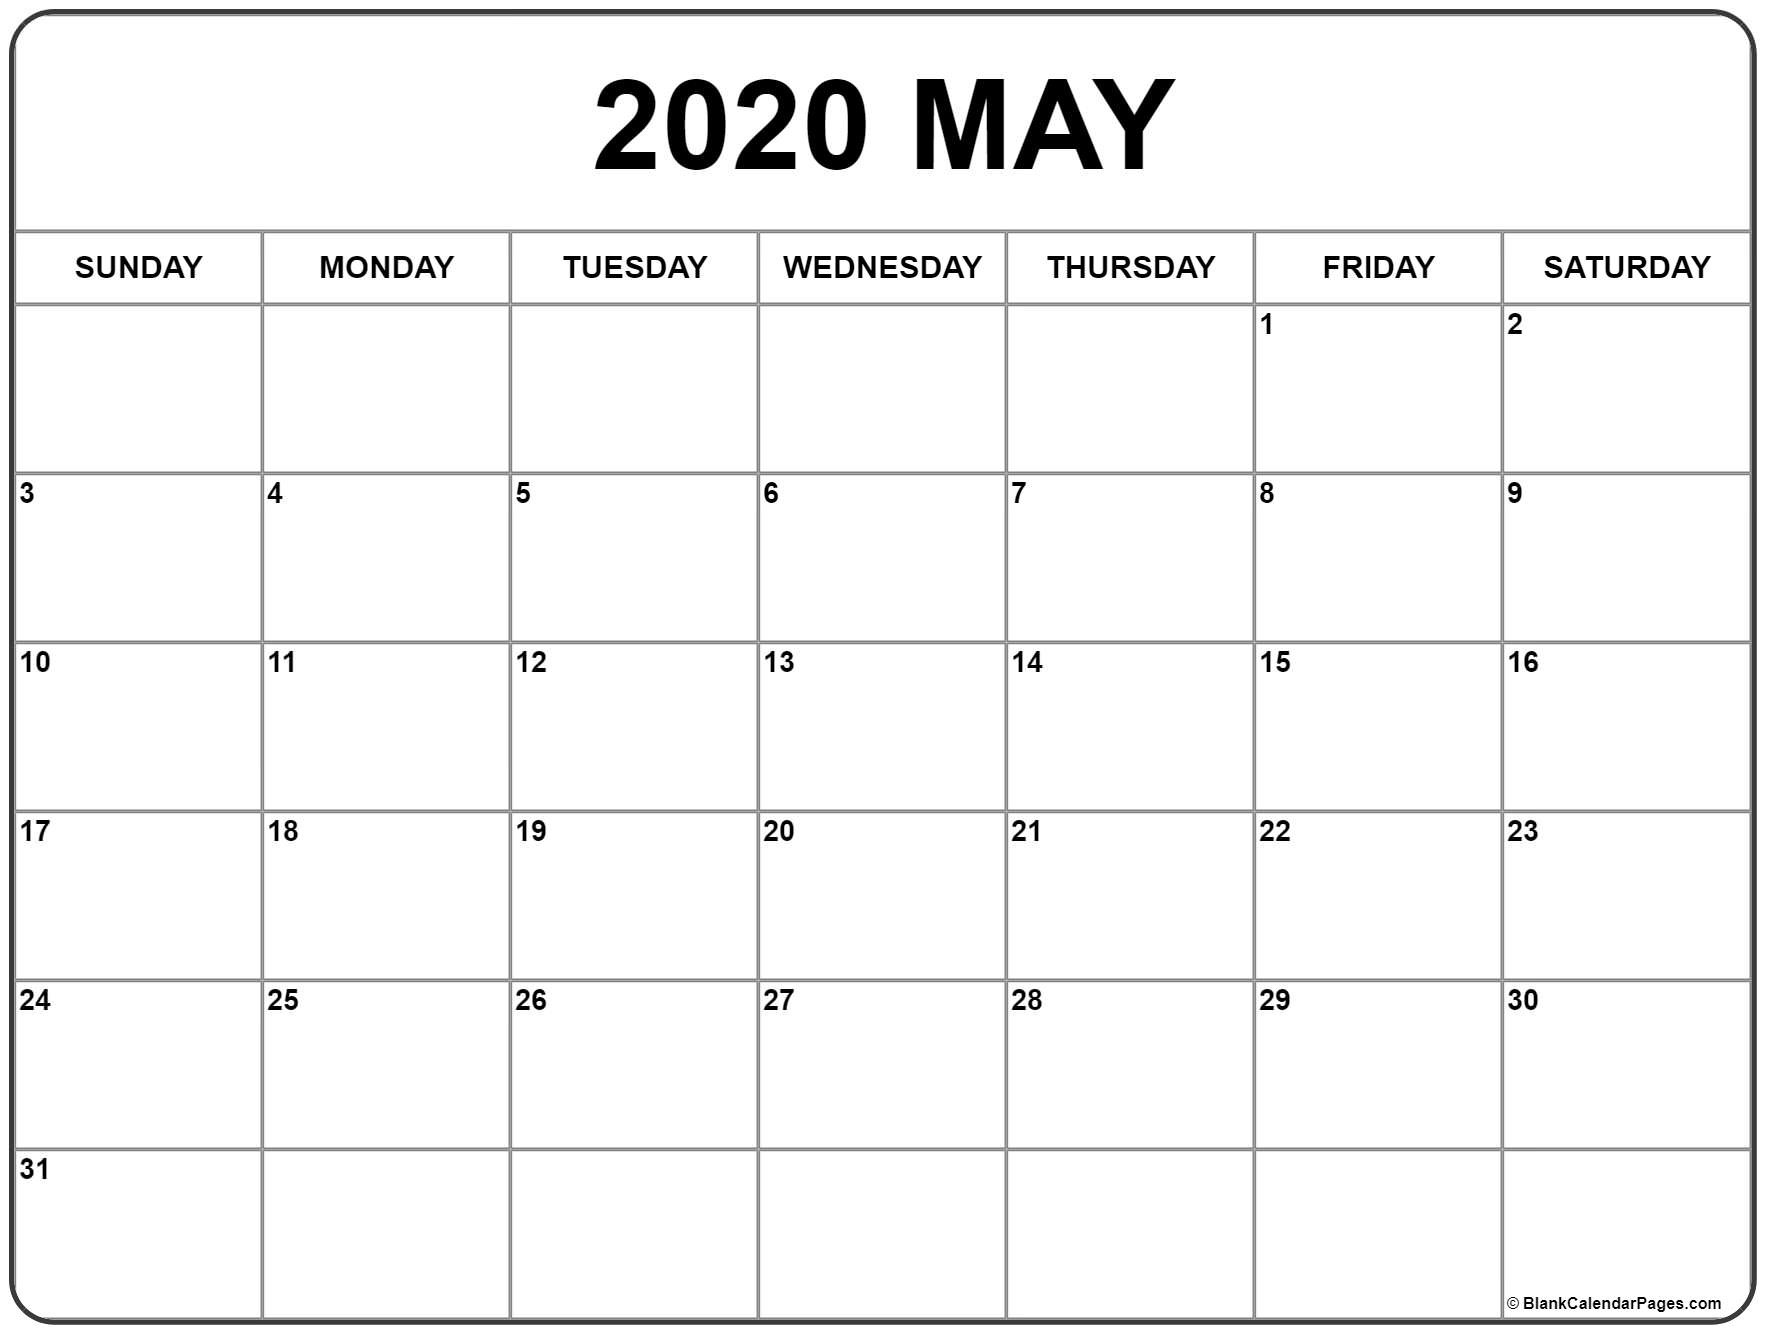 May 2020 Calendar | Free Printable Monthly Calendars  Blank Calendar 2020